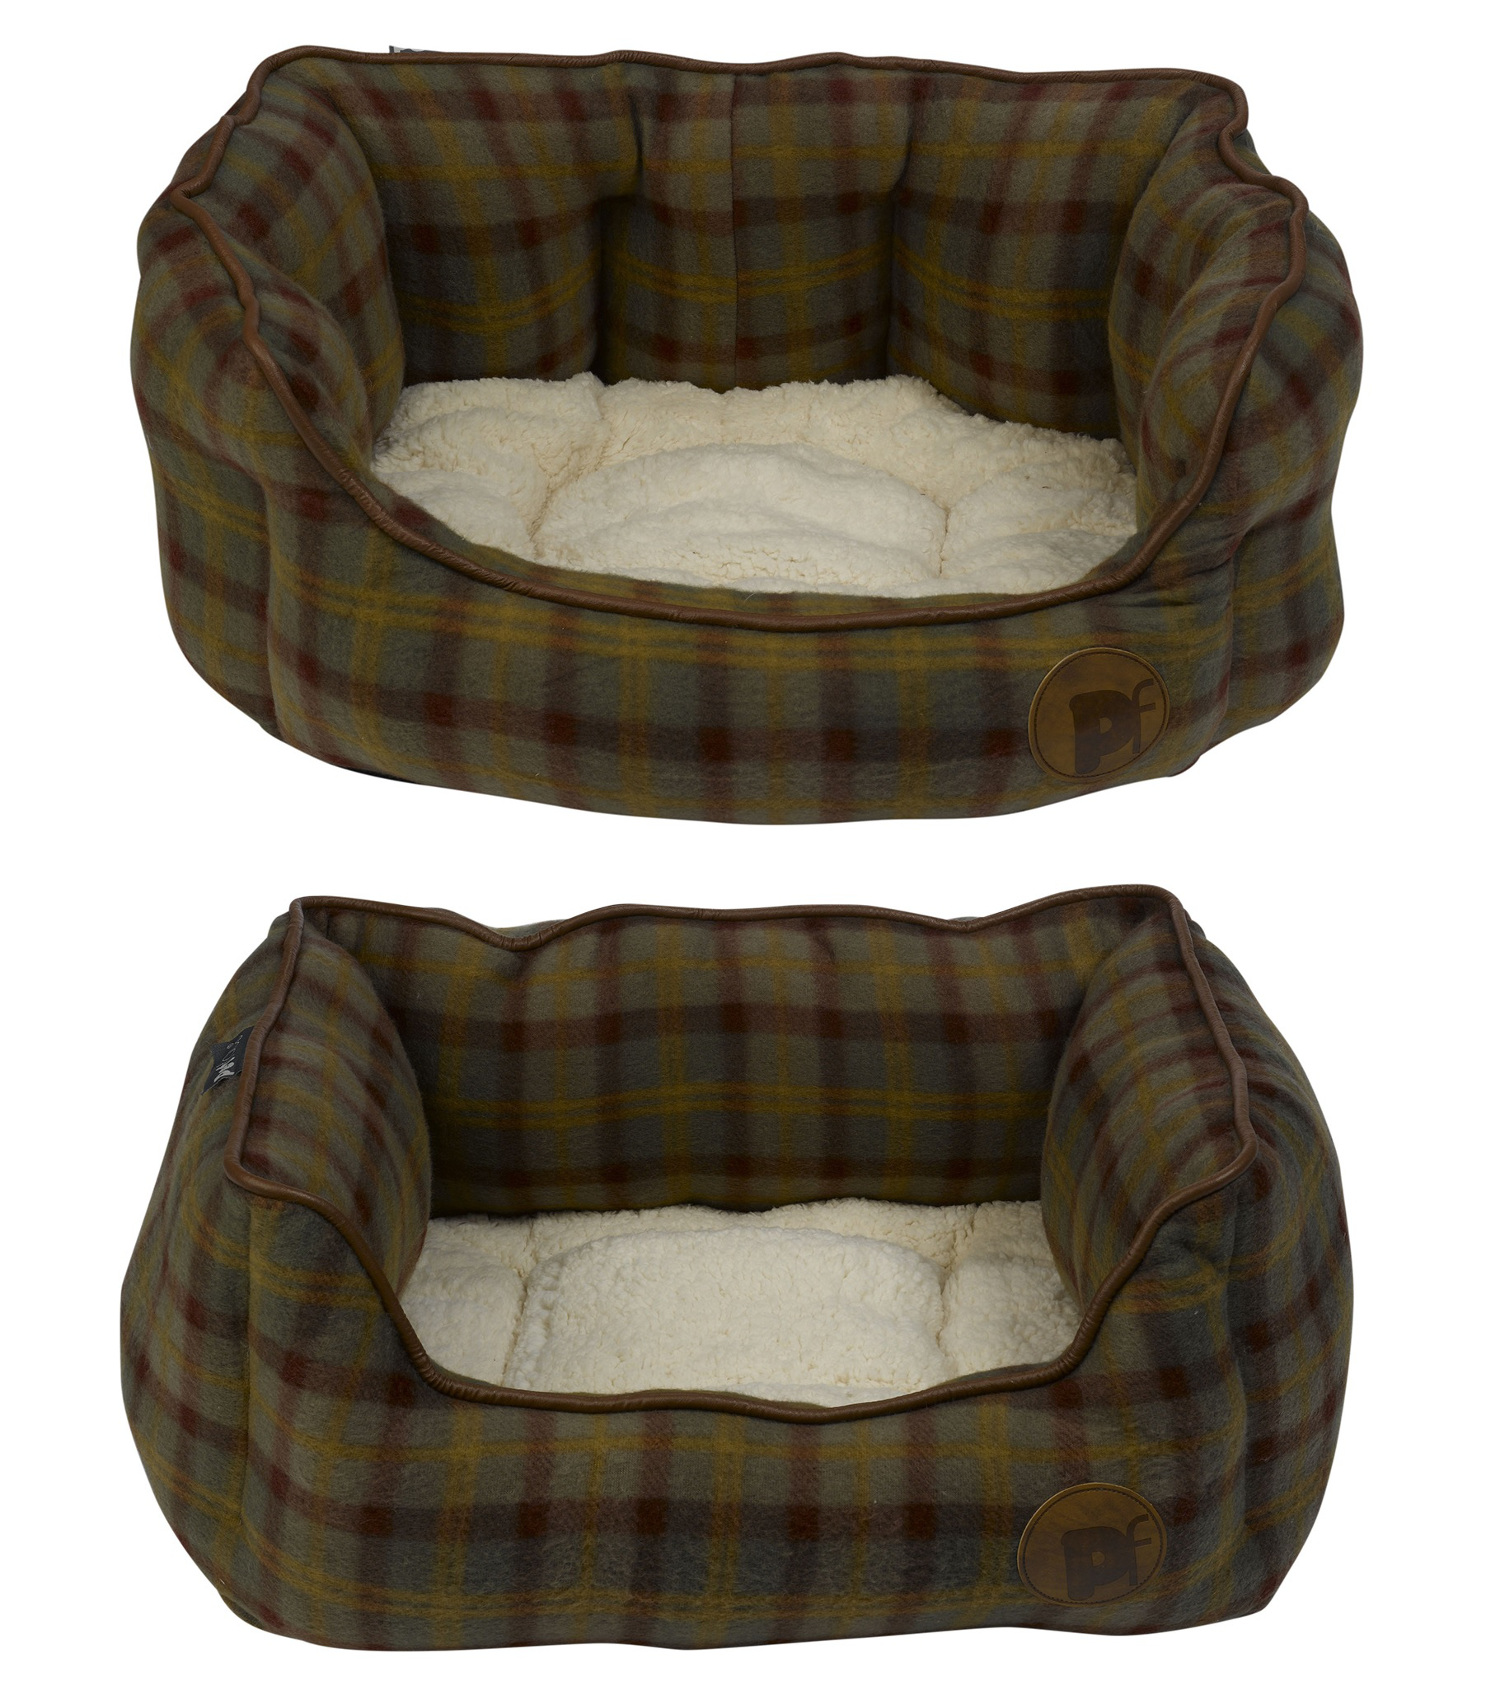 pet face country check luxury dog bed fleece faux. Black Bedroom Furniture Sets. Home Design Ideas